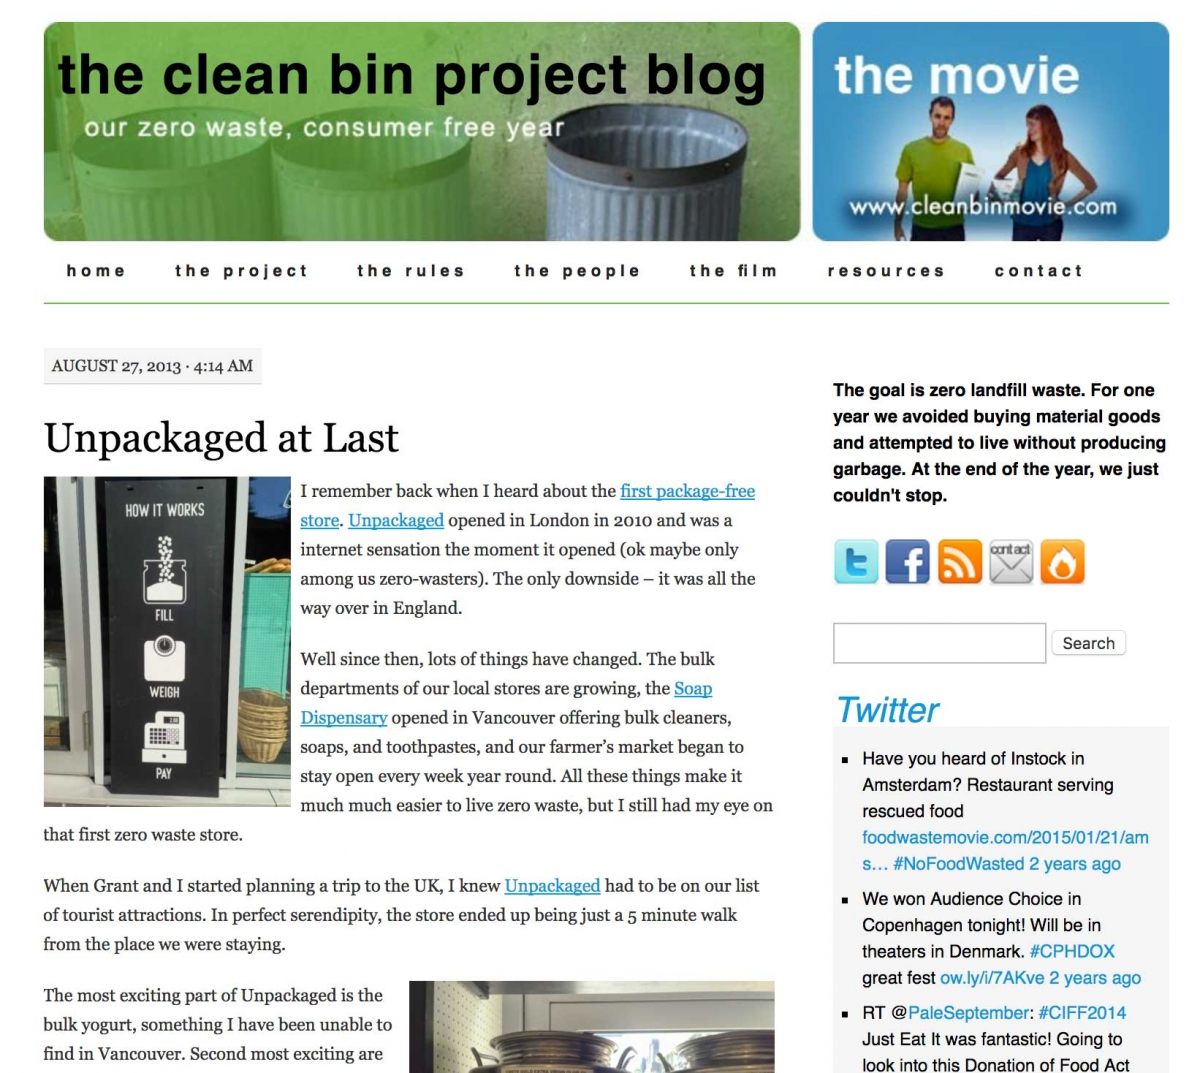 Screenshot of Clean Bin Project website home page